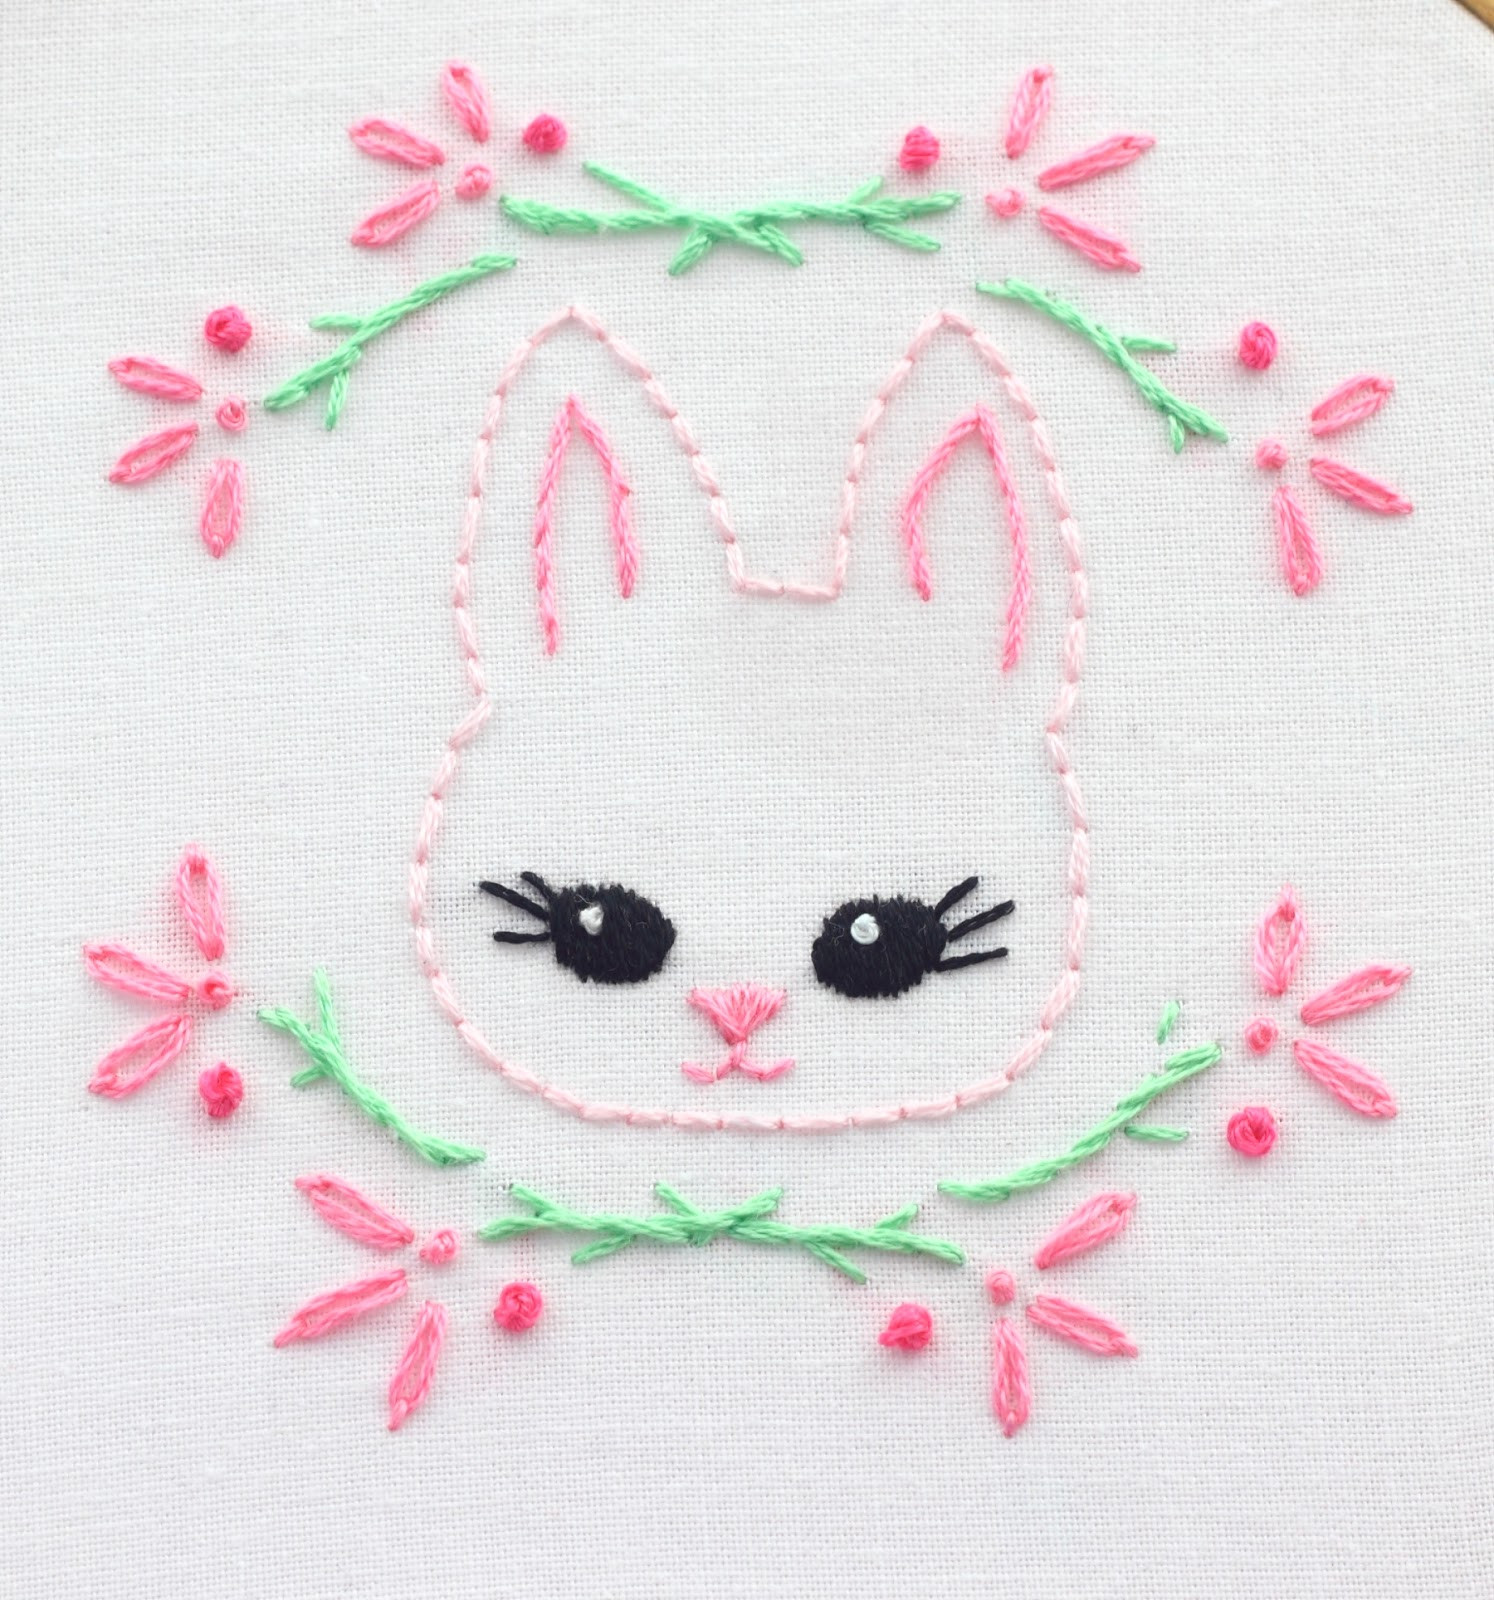 Best Of Big B Baby Girl Embroidery Design Baby Embroidery Of Gorgeous 42 Ideas Baby Embroidery